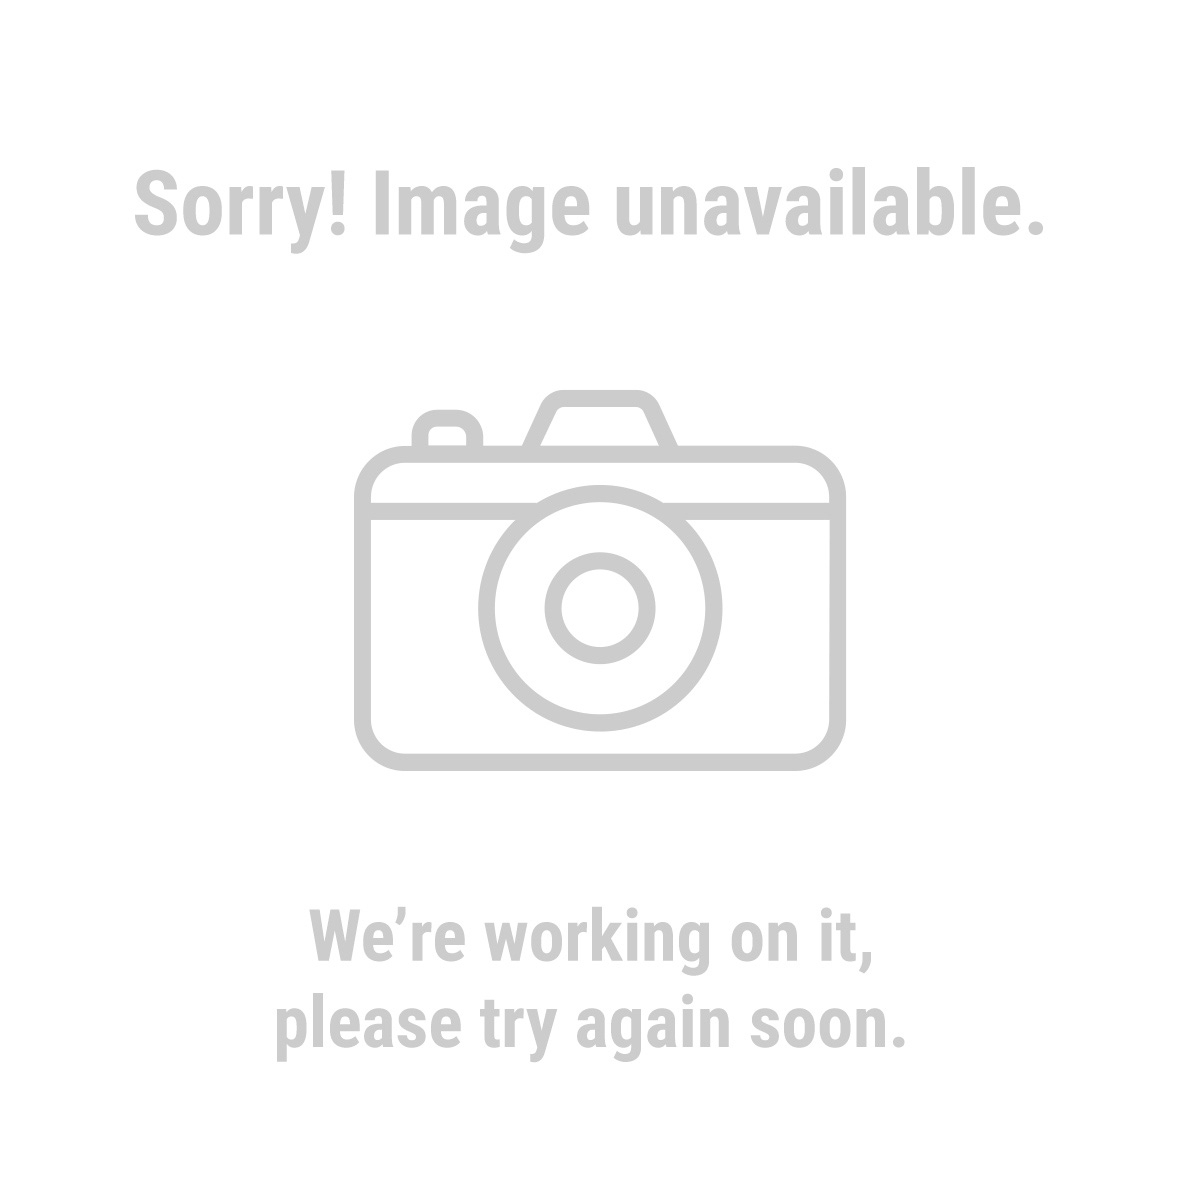 Detailer's Choice 68439 Kwik-Dry PVA Sponge Cloth